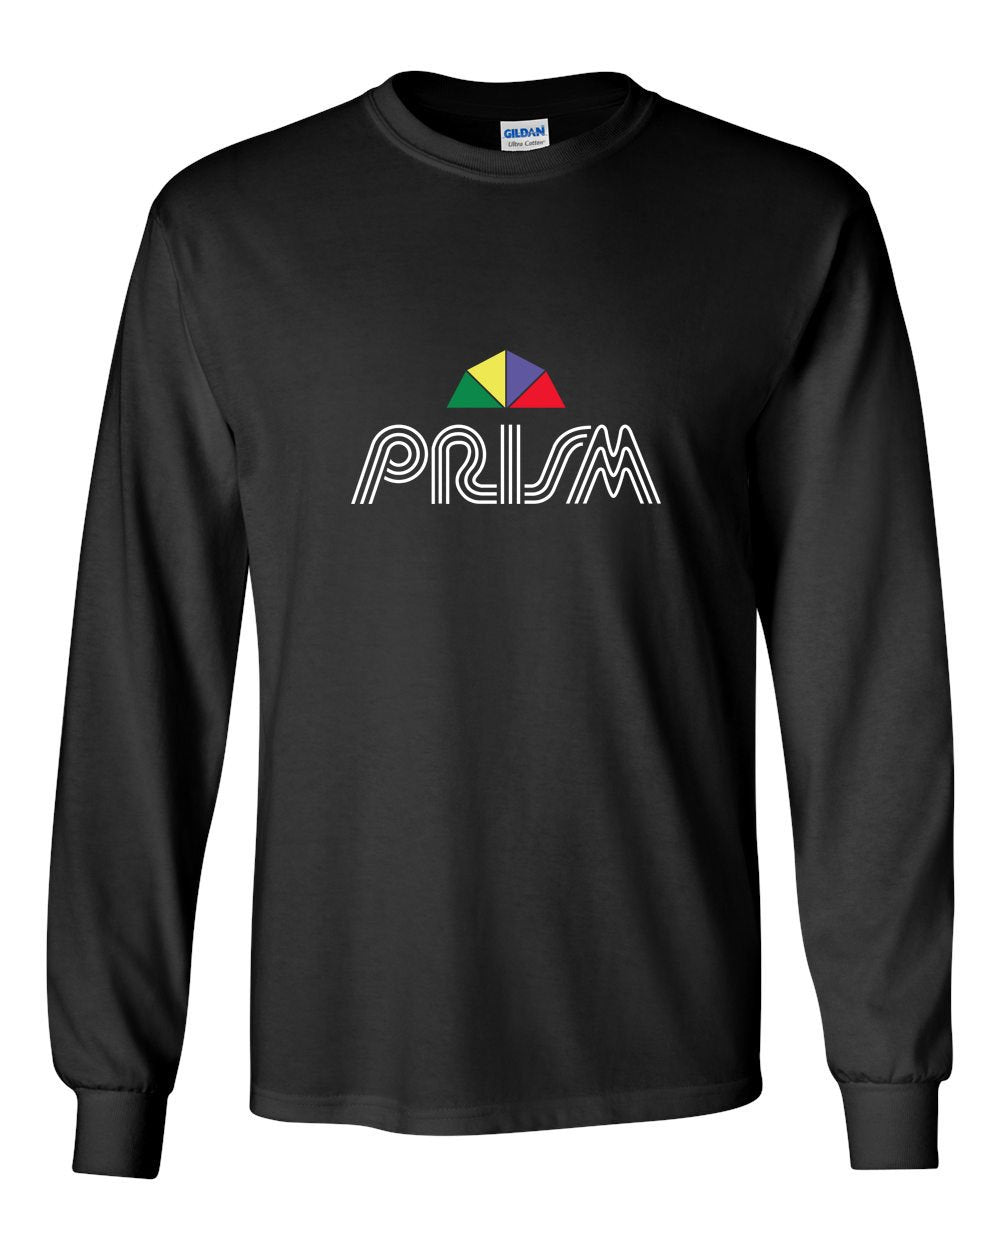 Prism MENS Long Sleeve Heavy Cotton T-Shirt